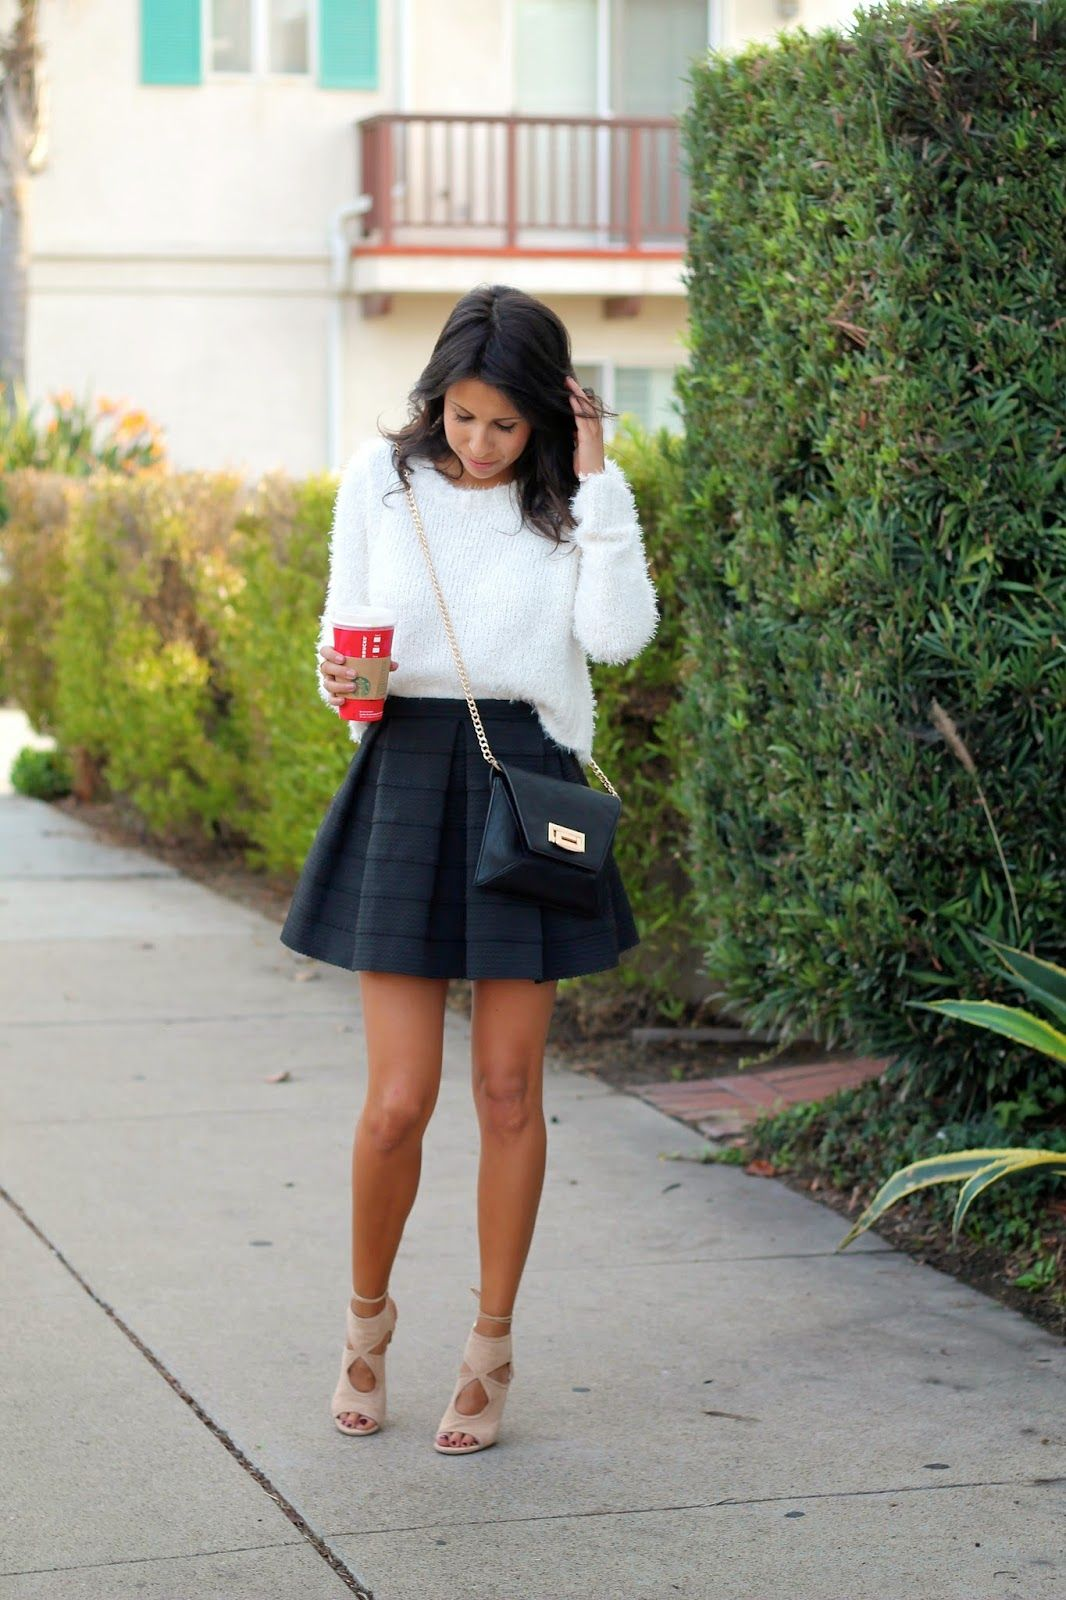 white sweater outfit - Buscar con Google | Similar In my wardrobe ...